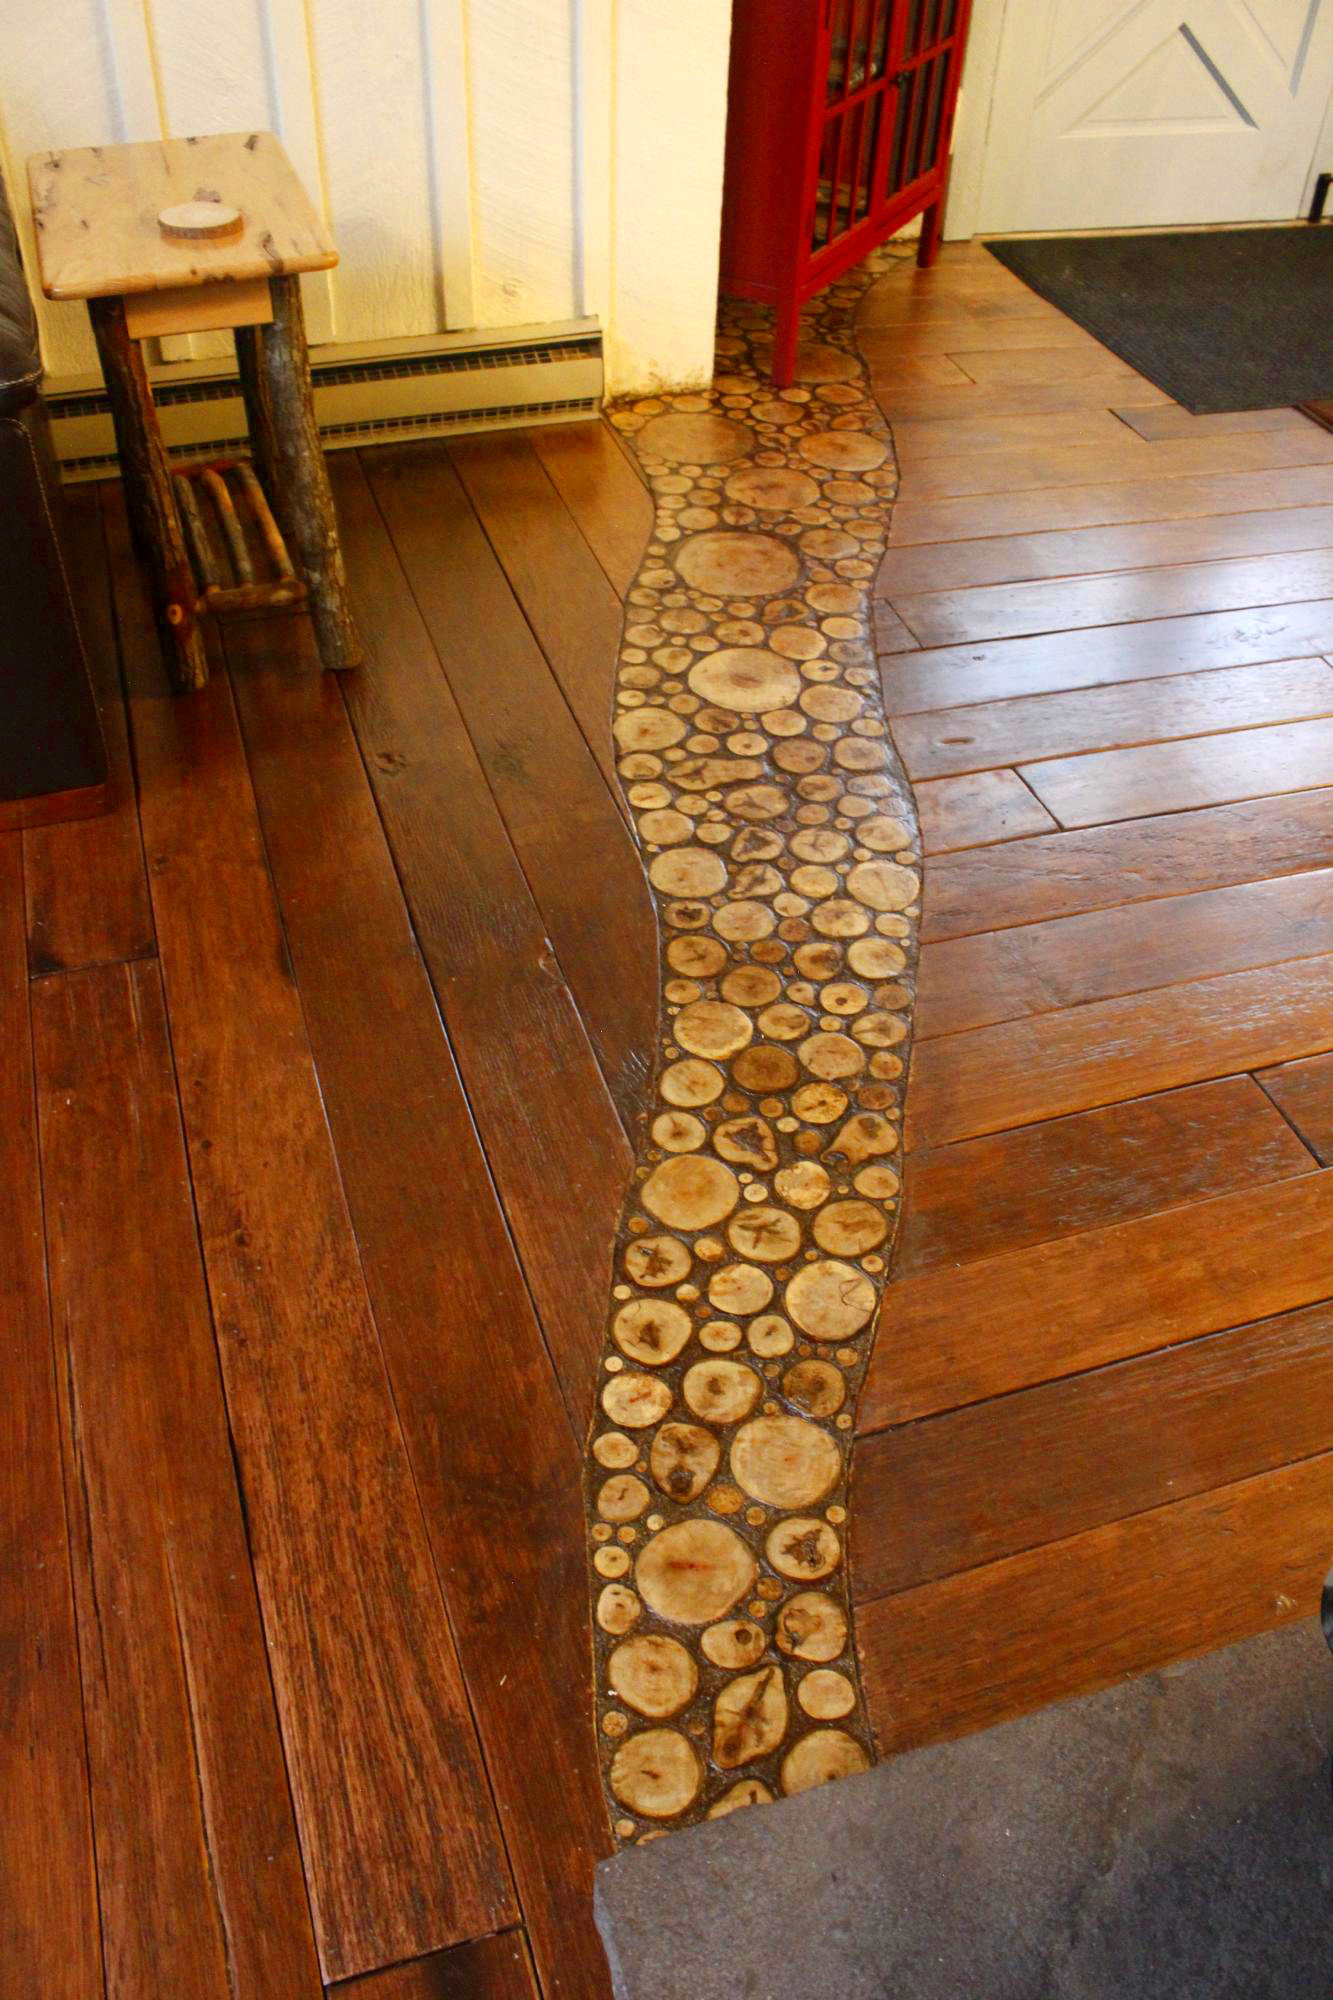 Installing An End Grain Flooring Inlay - The End Grain Flooring Inlay Finished